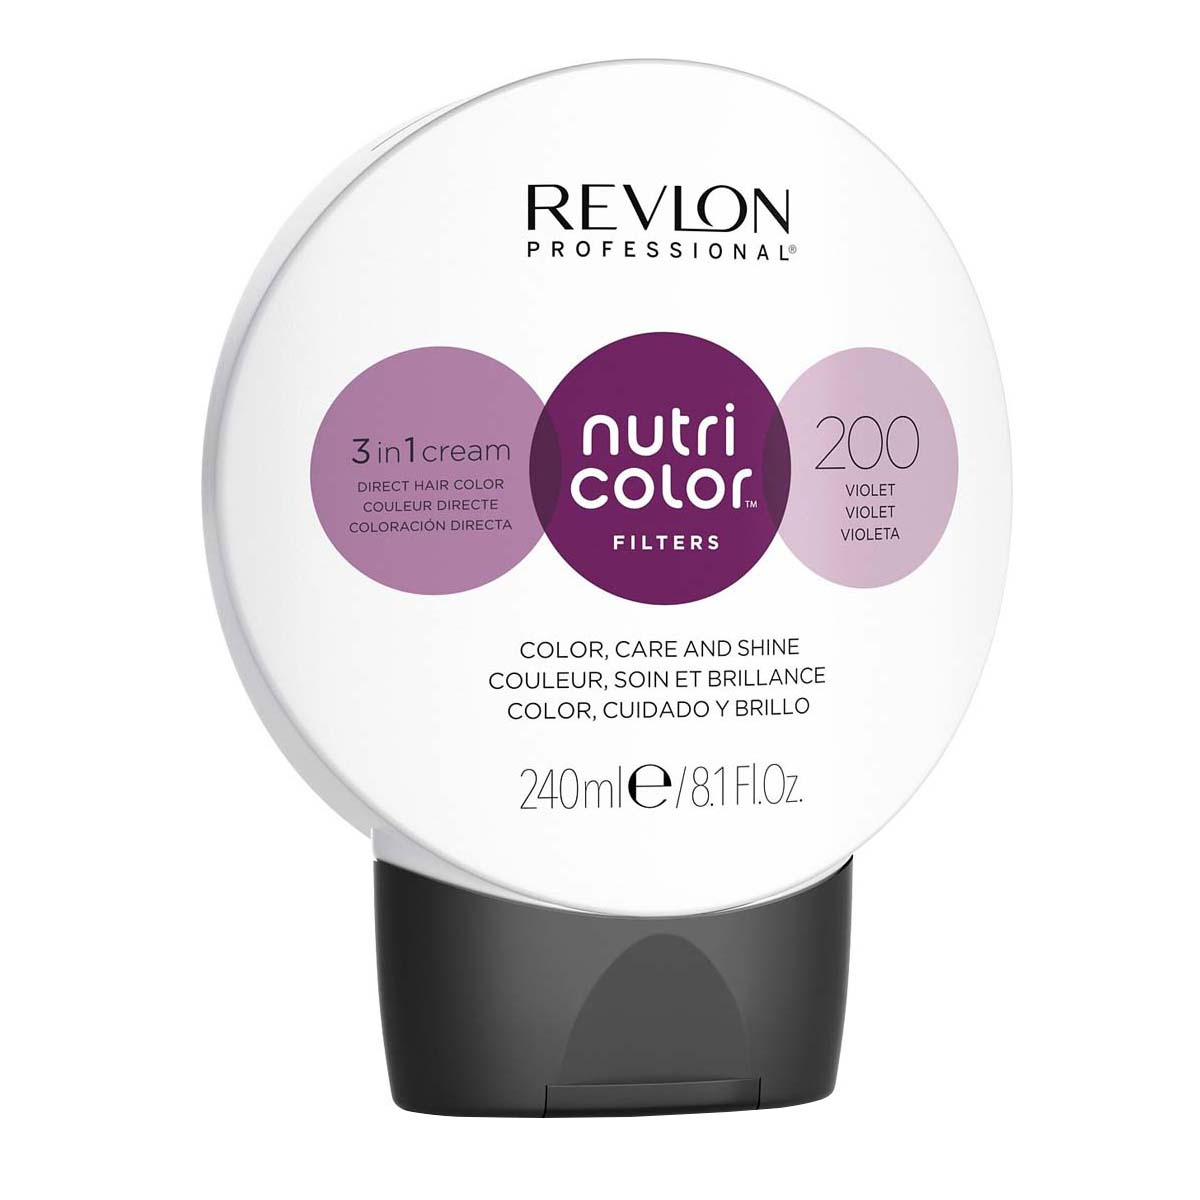 Nutri Color Filters 240ml - 200 Violet